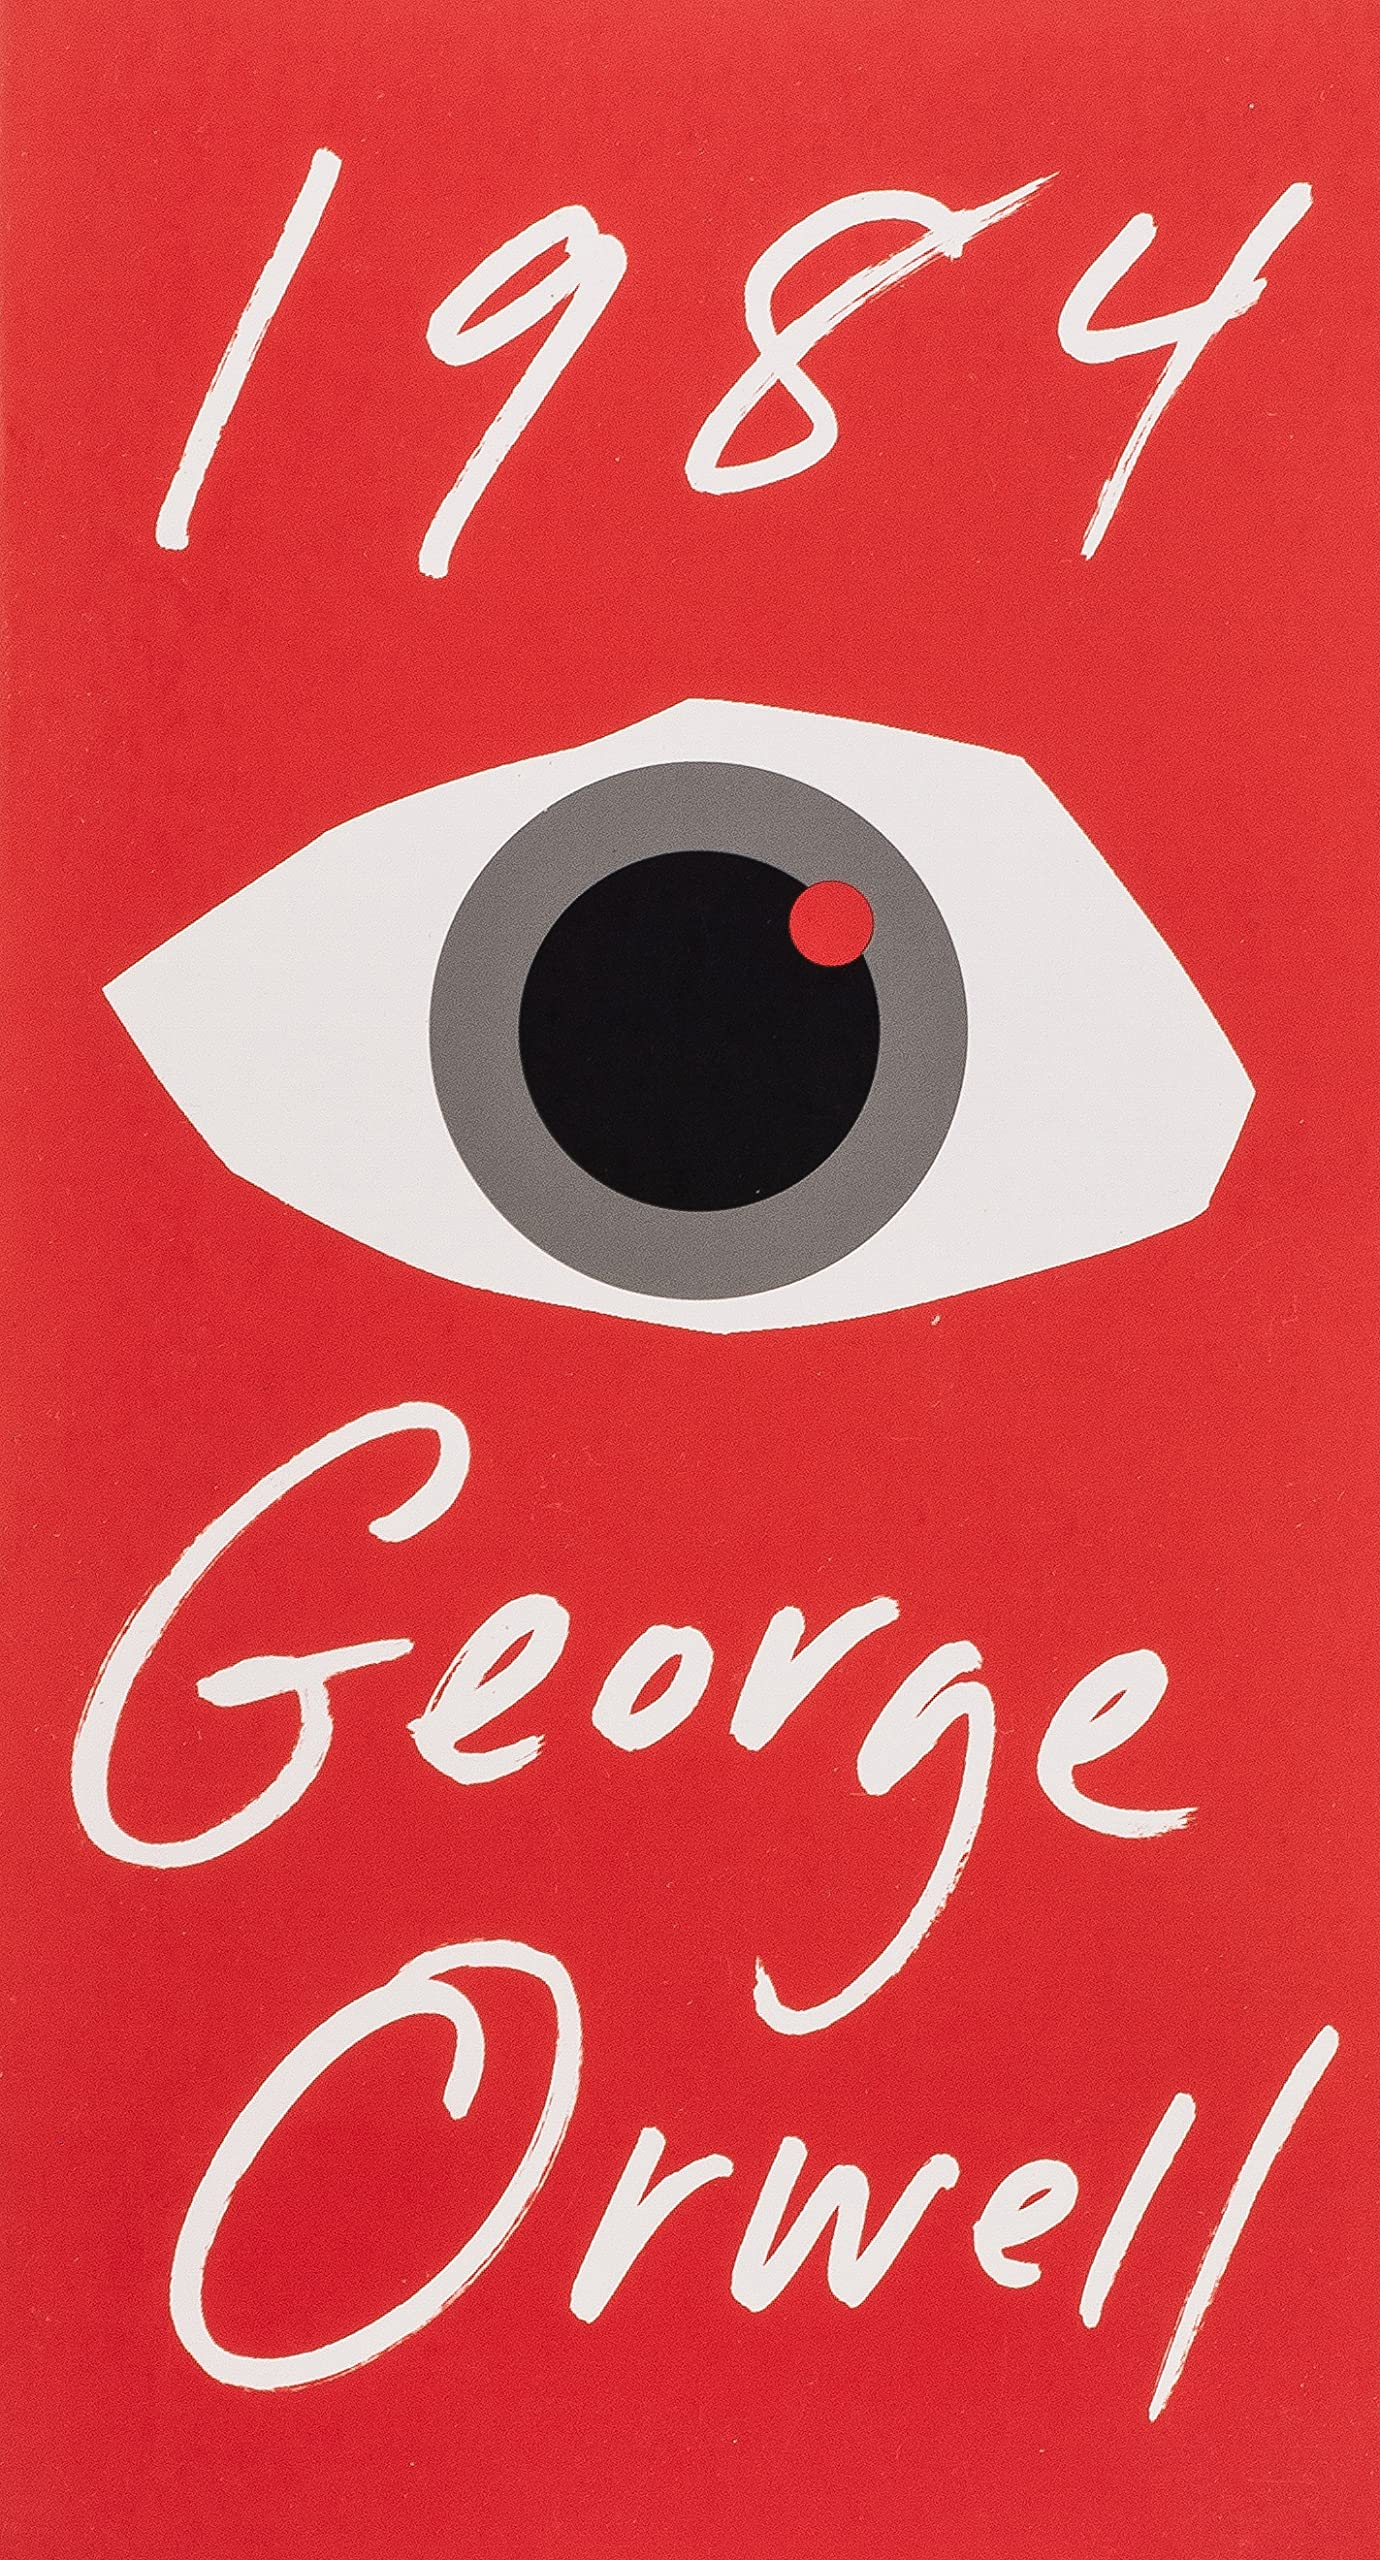 1984: George Orwell, Erich Fromm: 9780451524935: Amazon.com: Books